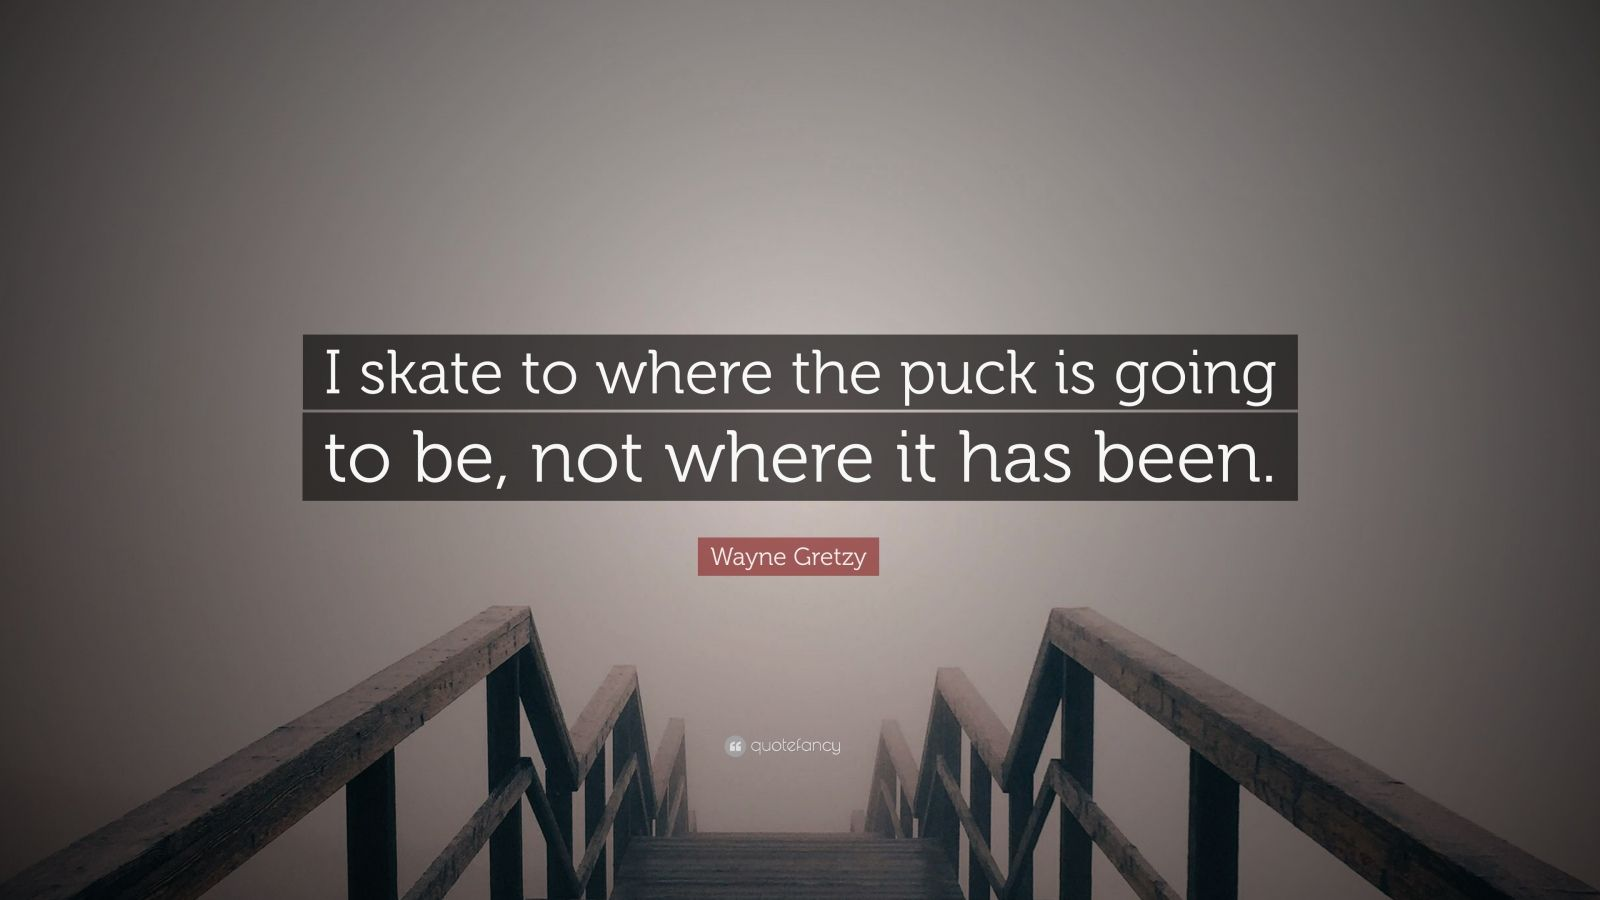 """Wayne Gretzy Quote: """"I skate to where the puck is going to be, not where it has been."""""""